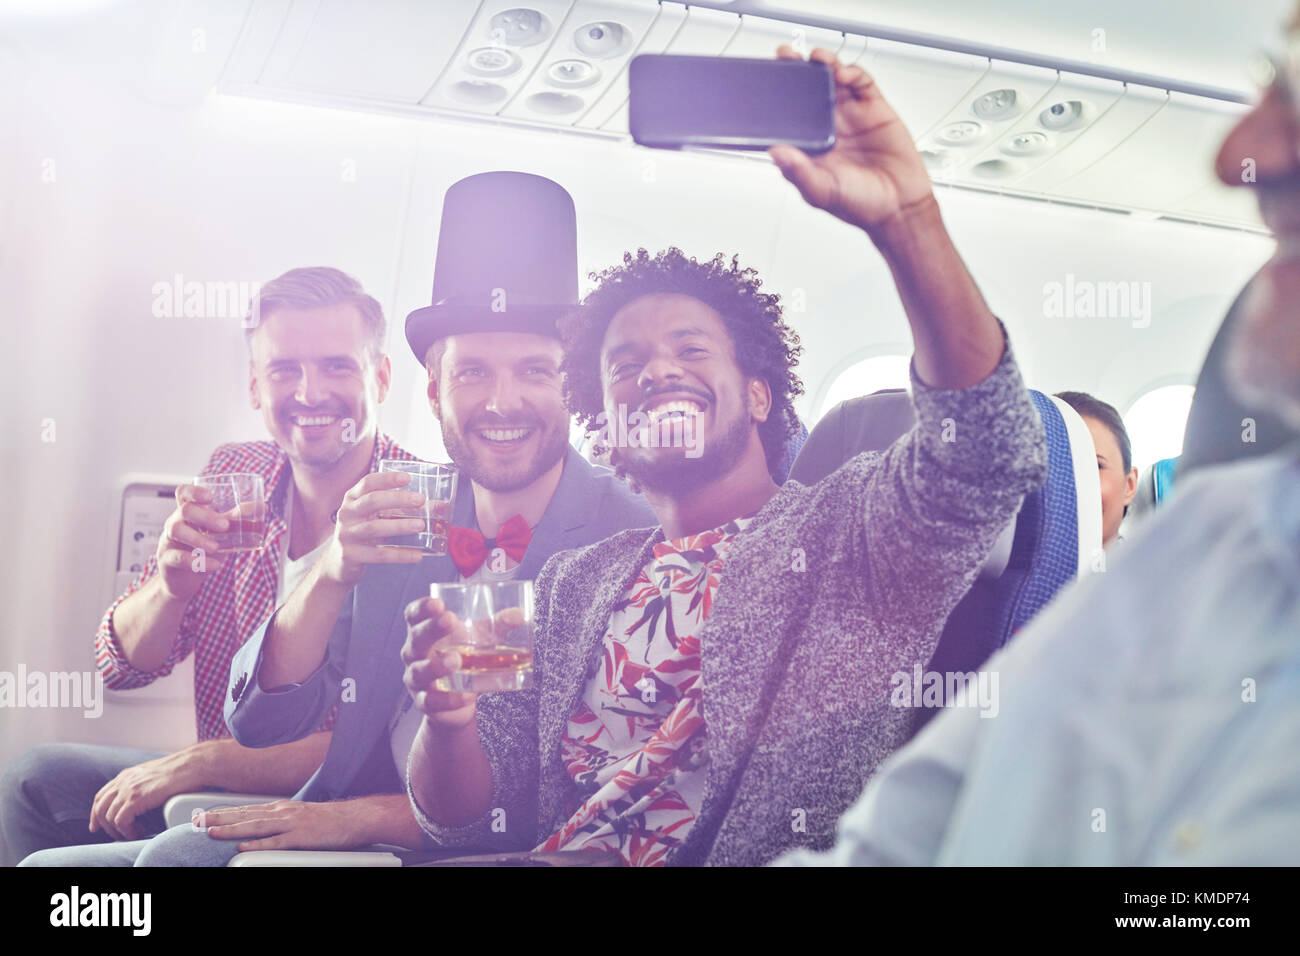 Enthusiastic young male friends with camera phone drinking and taking selfie on airplane - Stock Image